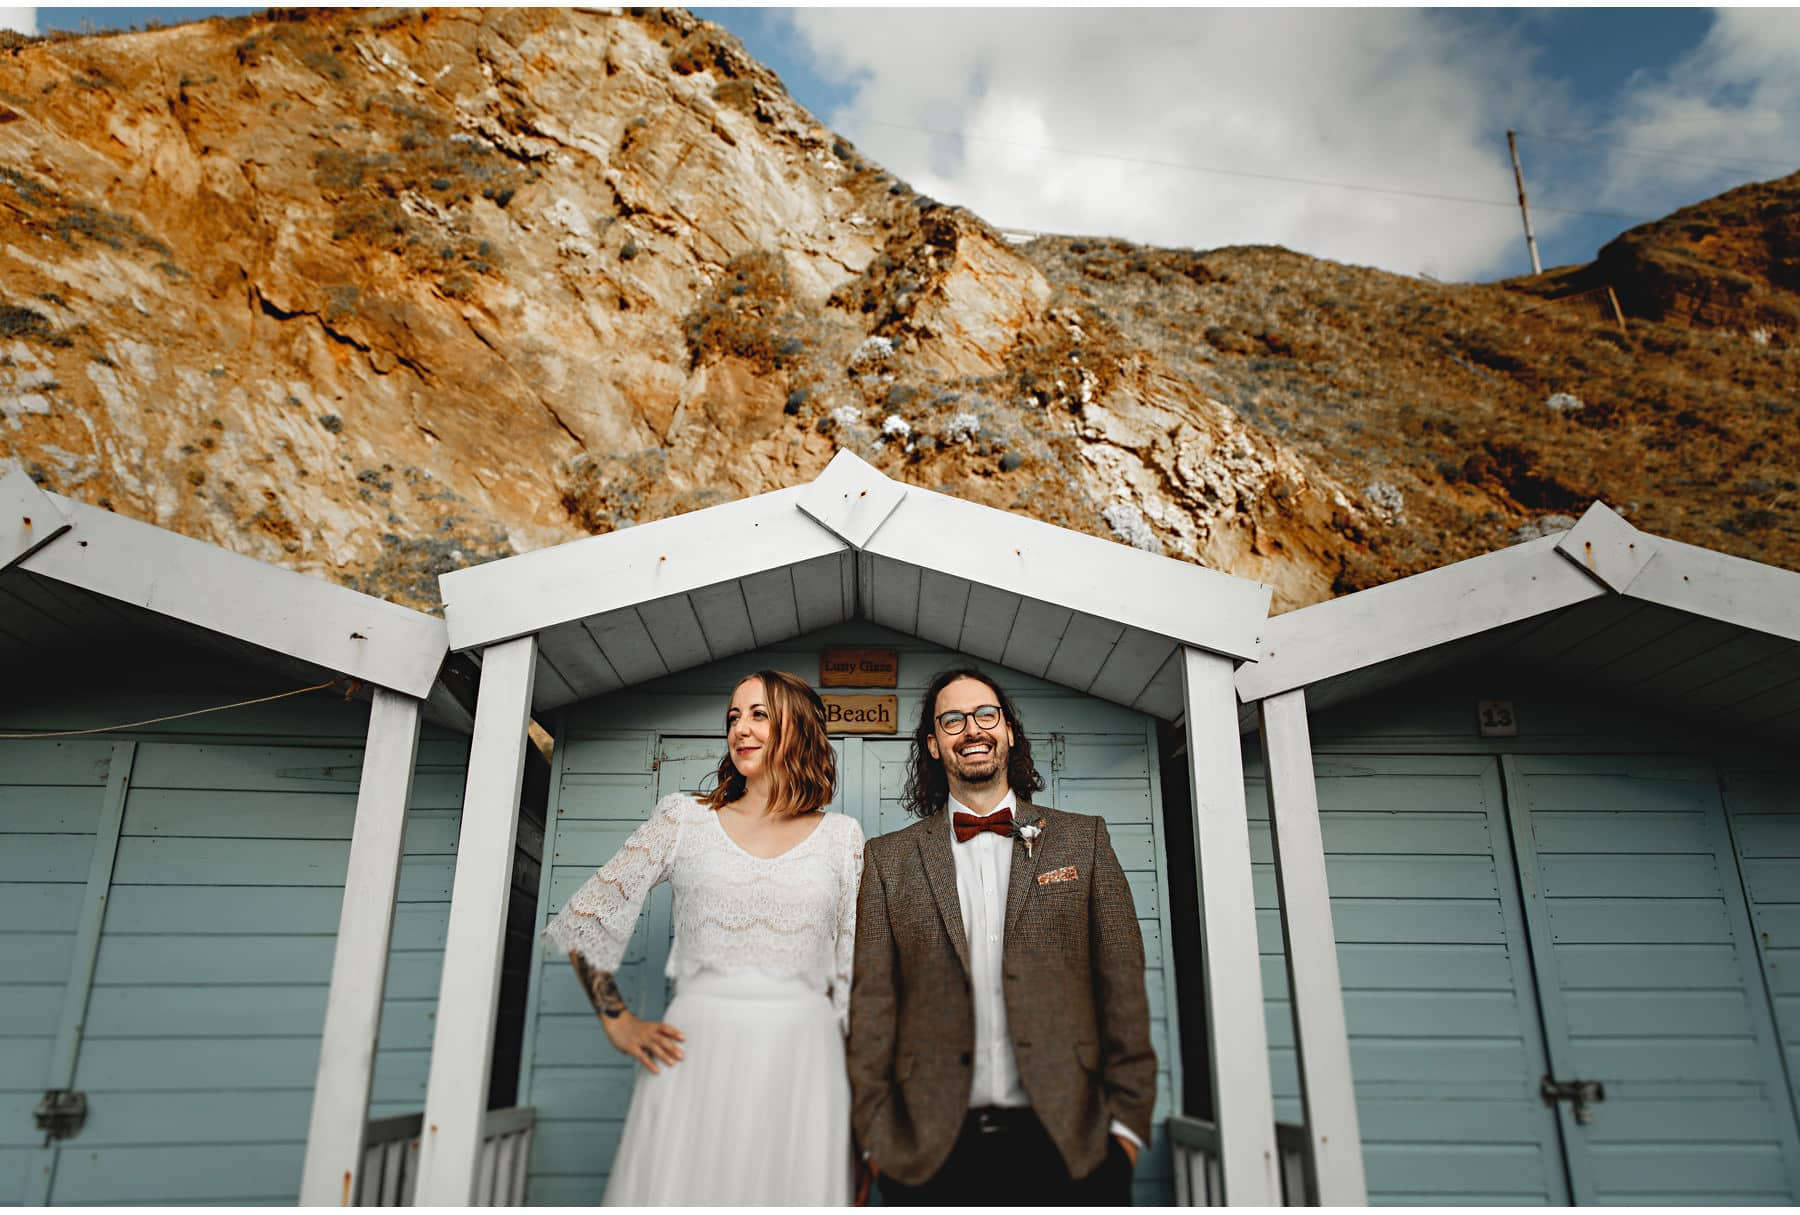 the bride & groom in front of the beach huts